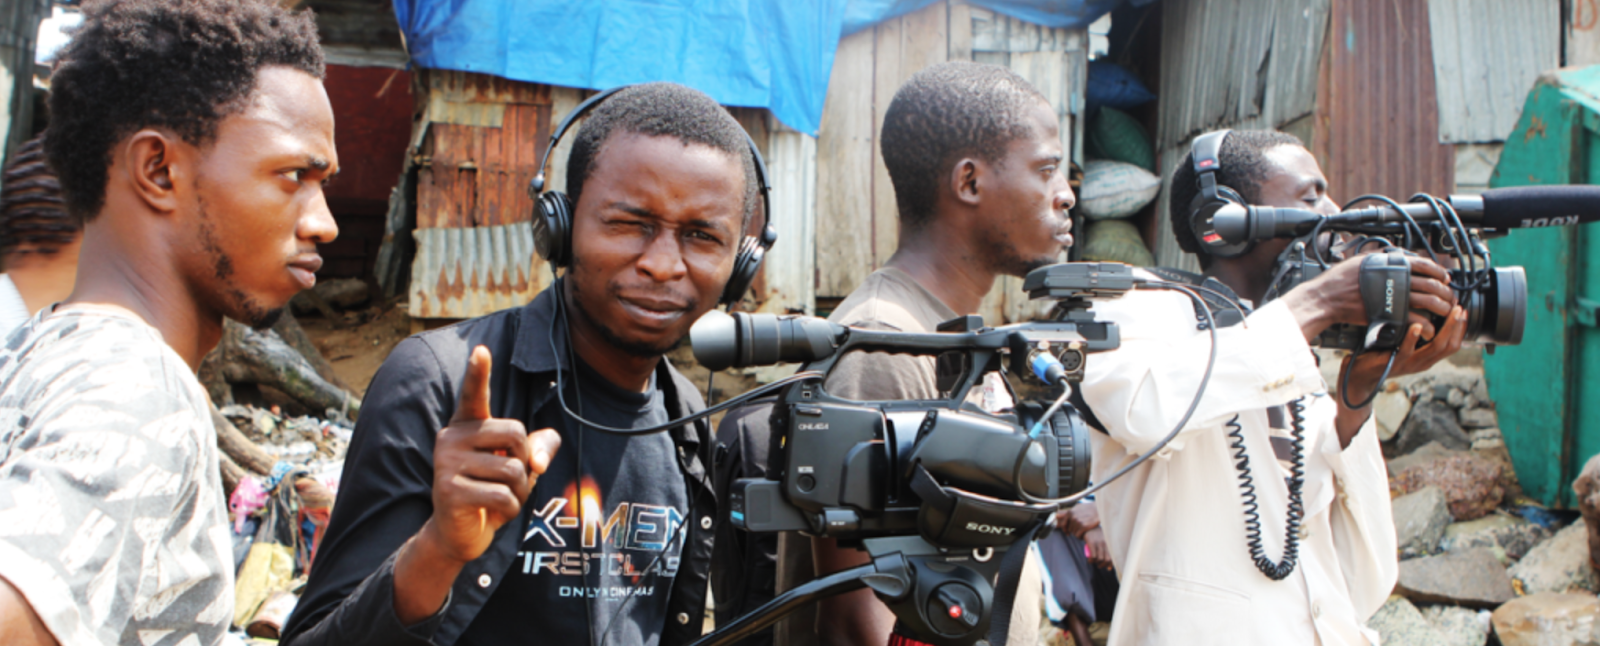 """""""When we deliver the message people definitely BELIEVE because it is not coming from a big politician, or a foreigner. It's coming from their FRIEND, their FAMILY, their next door NEIGHBOR."""" - LANSANA MANSARAY (a.k.a. Barmmy Boy) WeOwnTV Production Manager"""